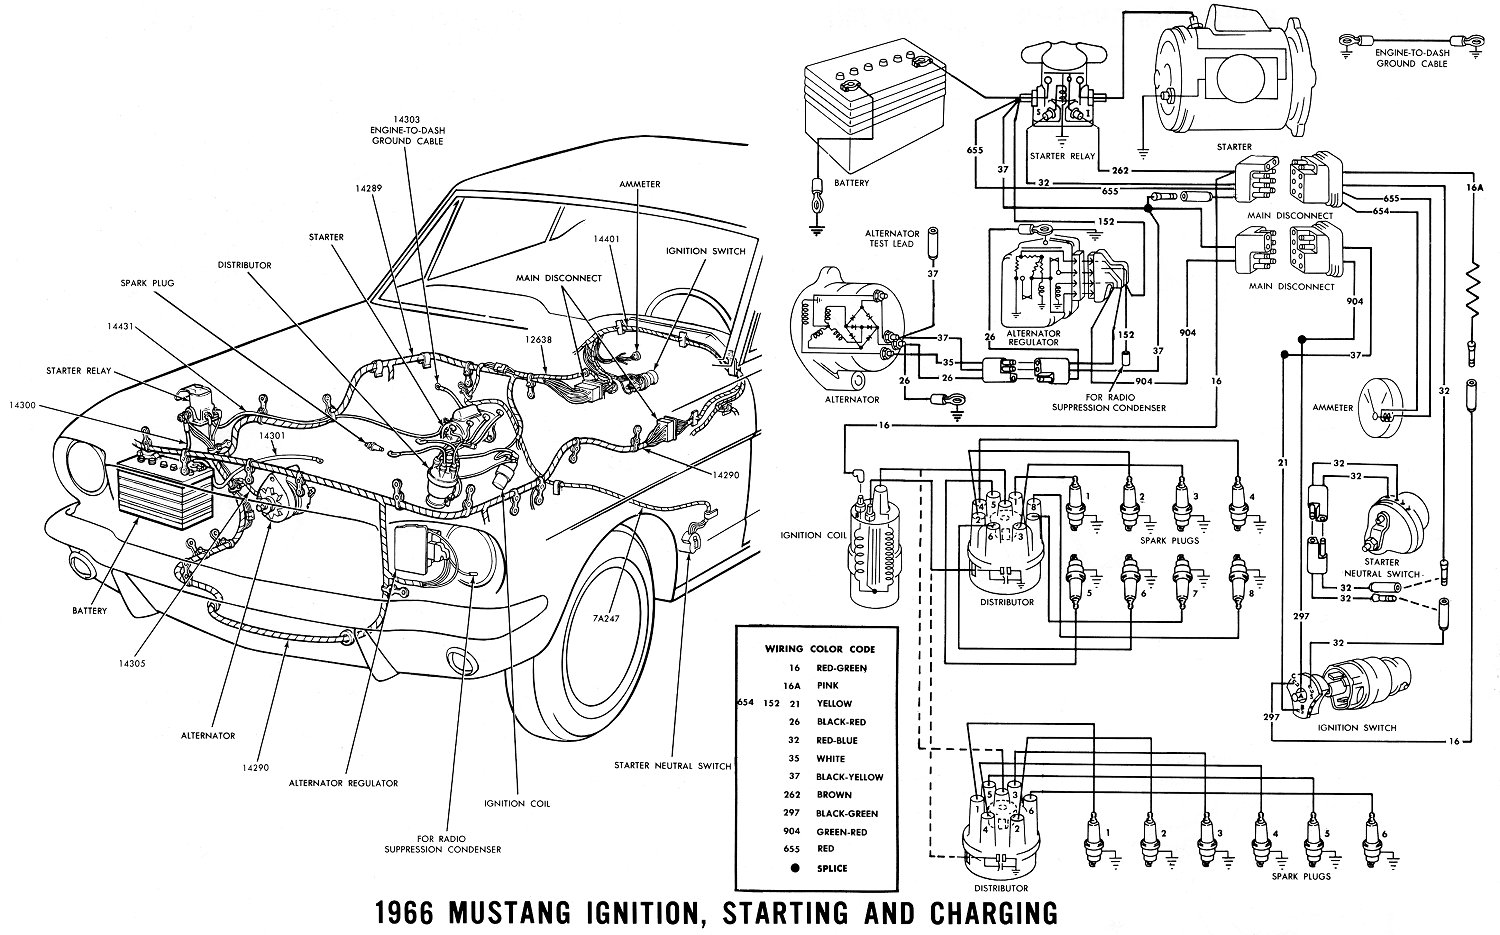 1966 Mustang Wiring Harness Diagram Will Be A Thing 302 Engine Lelu S 66 Diagrams 1984